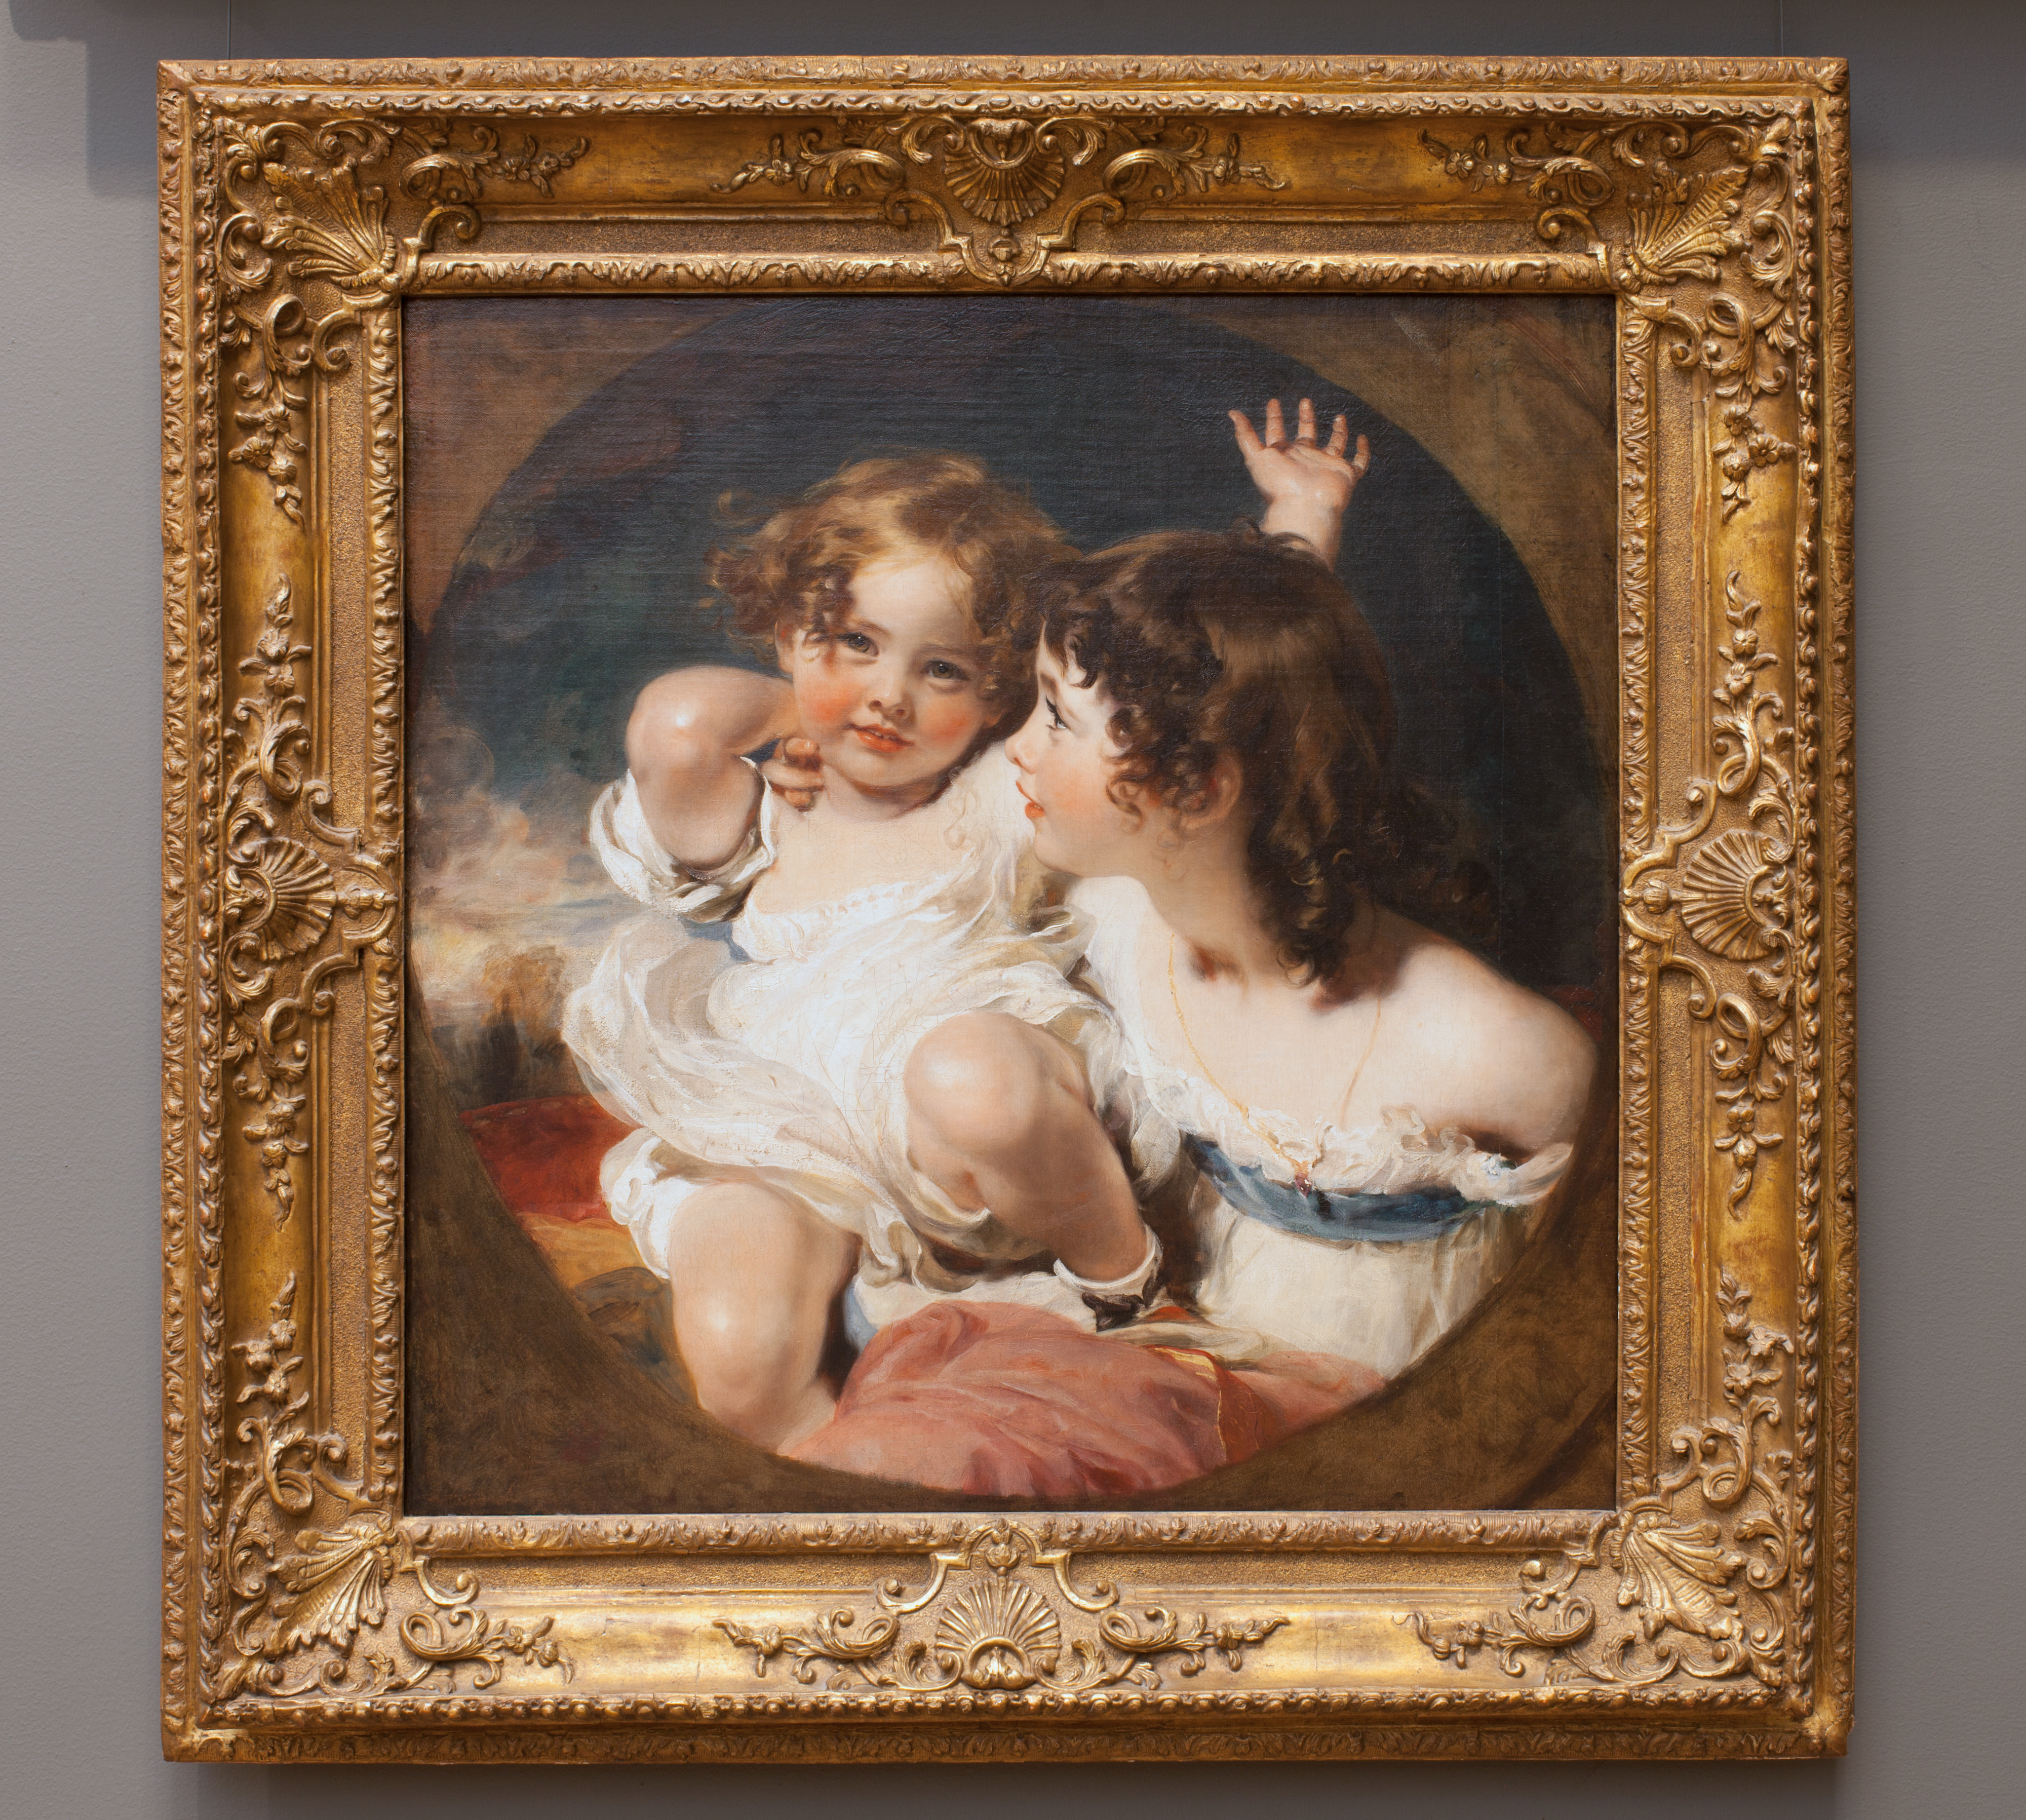 The Calmady Children (Emily, 1818–1906, and Laura Anne, 1820–1894),1823